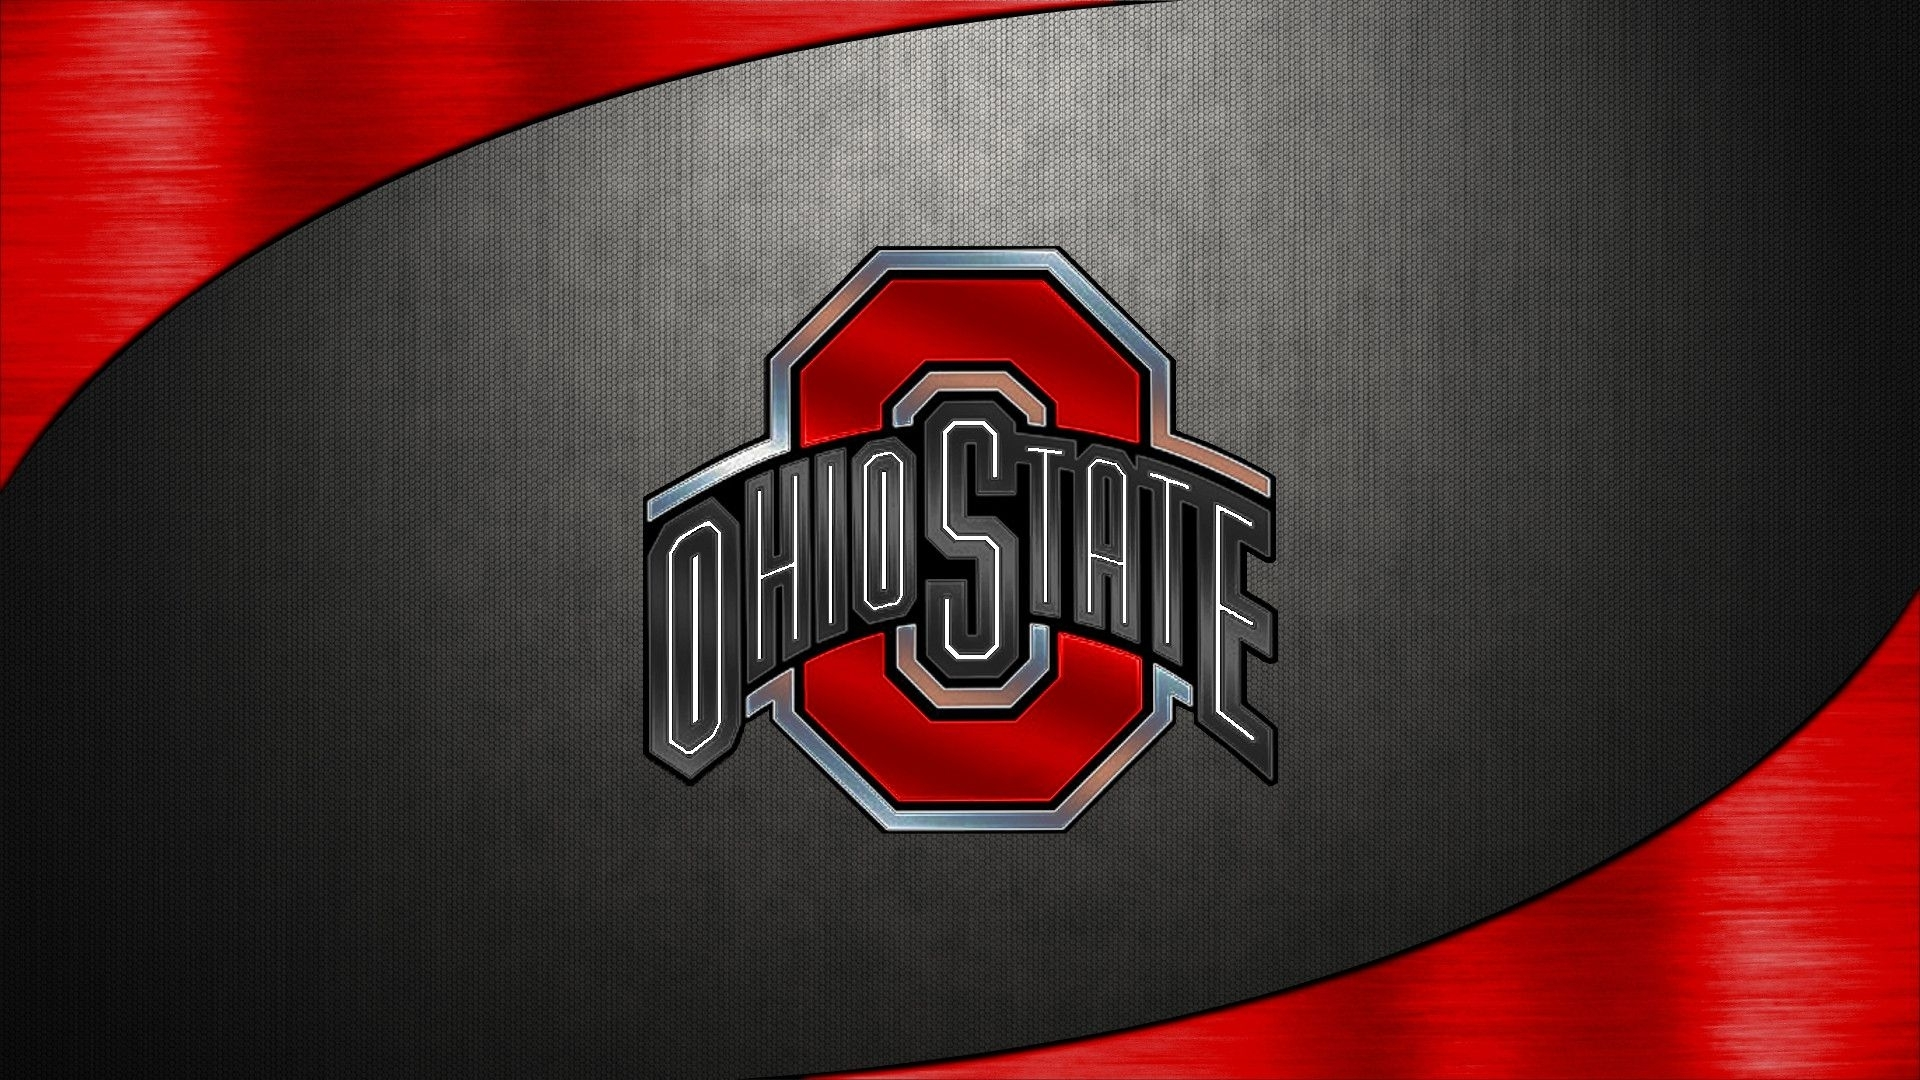 ohio state buckeyes men's basketball wallpapers - wallpaper cave